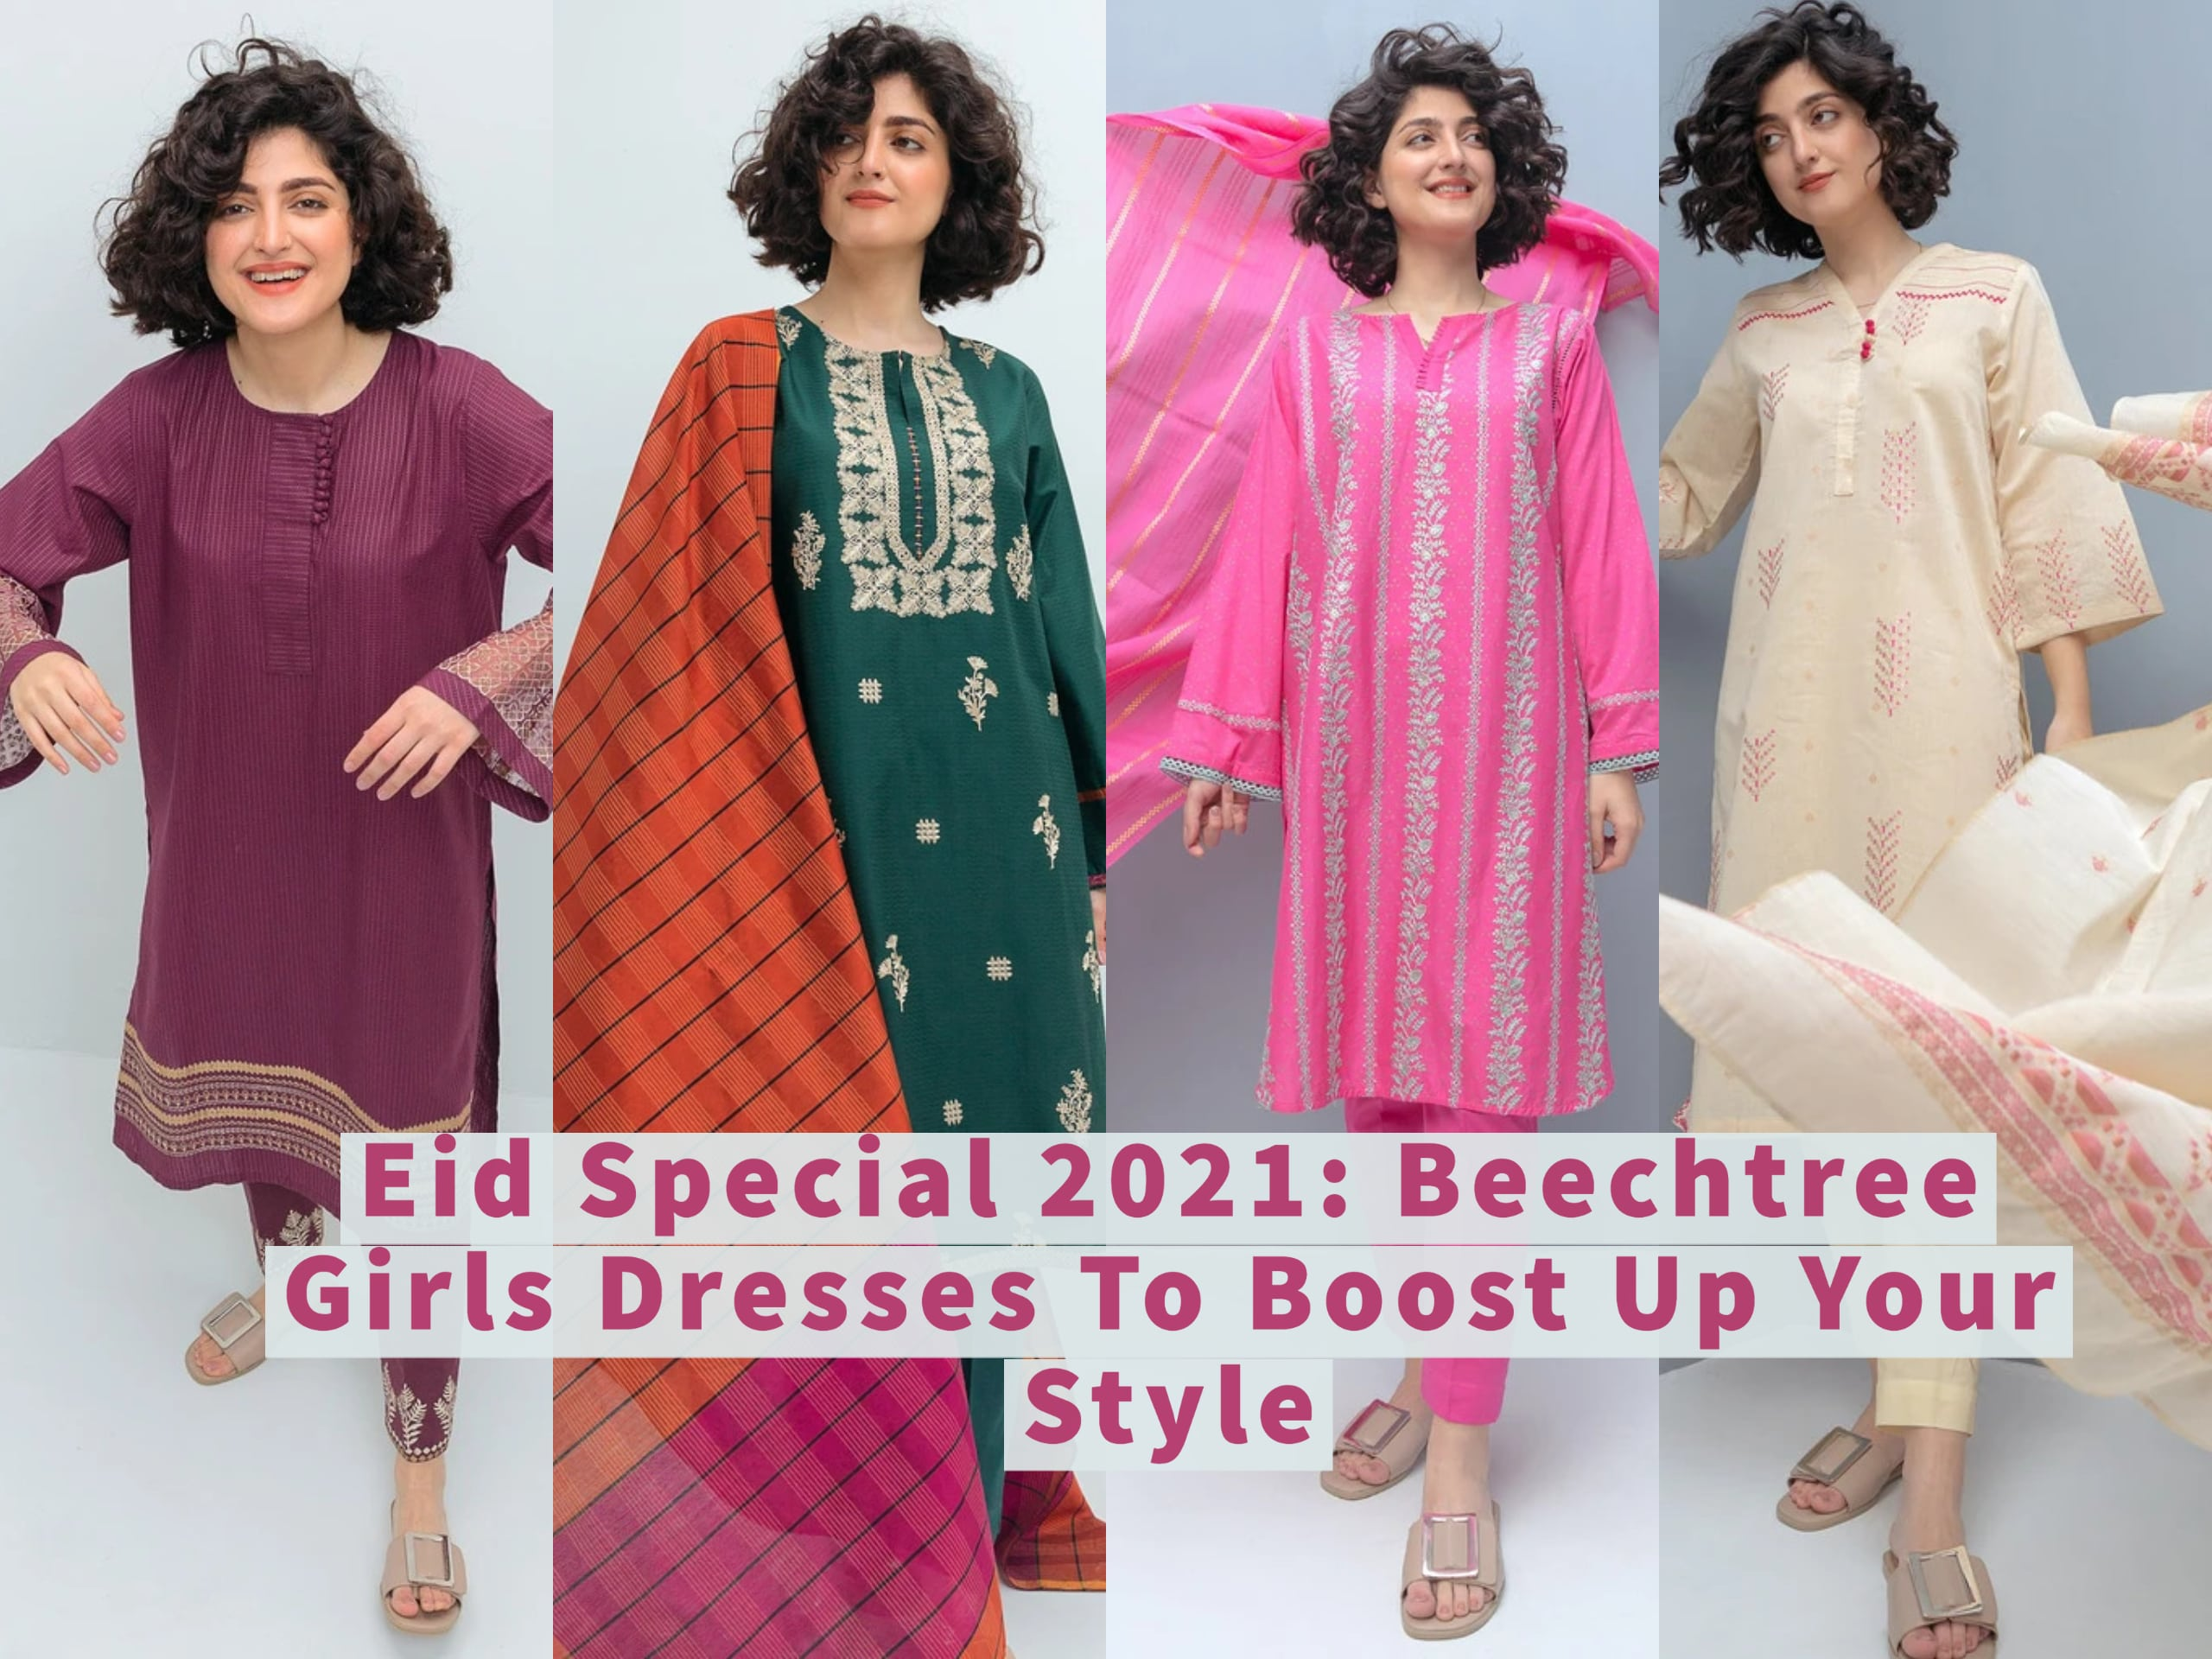 Eid Special 2021: Beechtree Girls Dresses To Boost Up Your Style